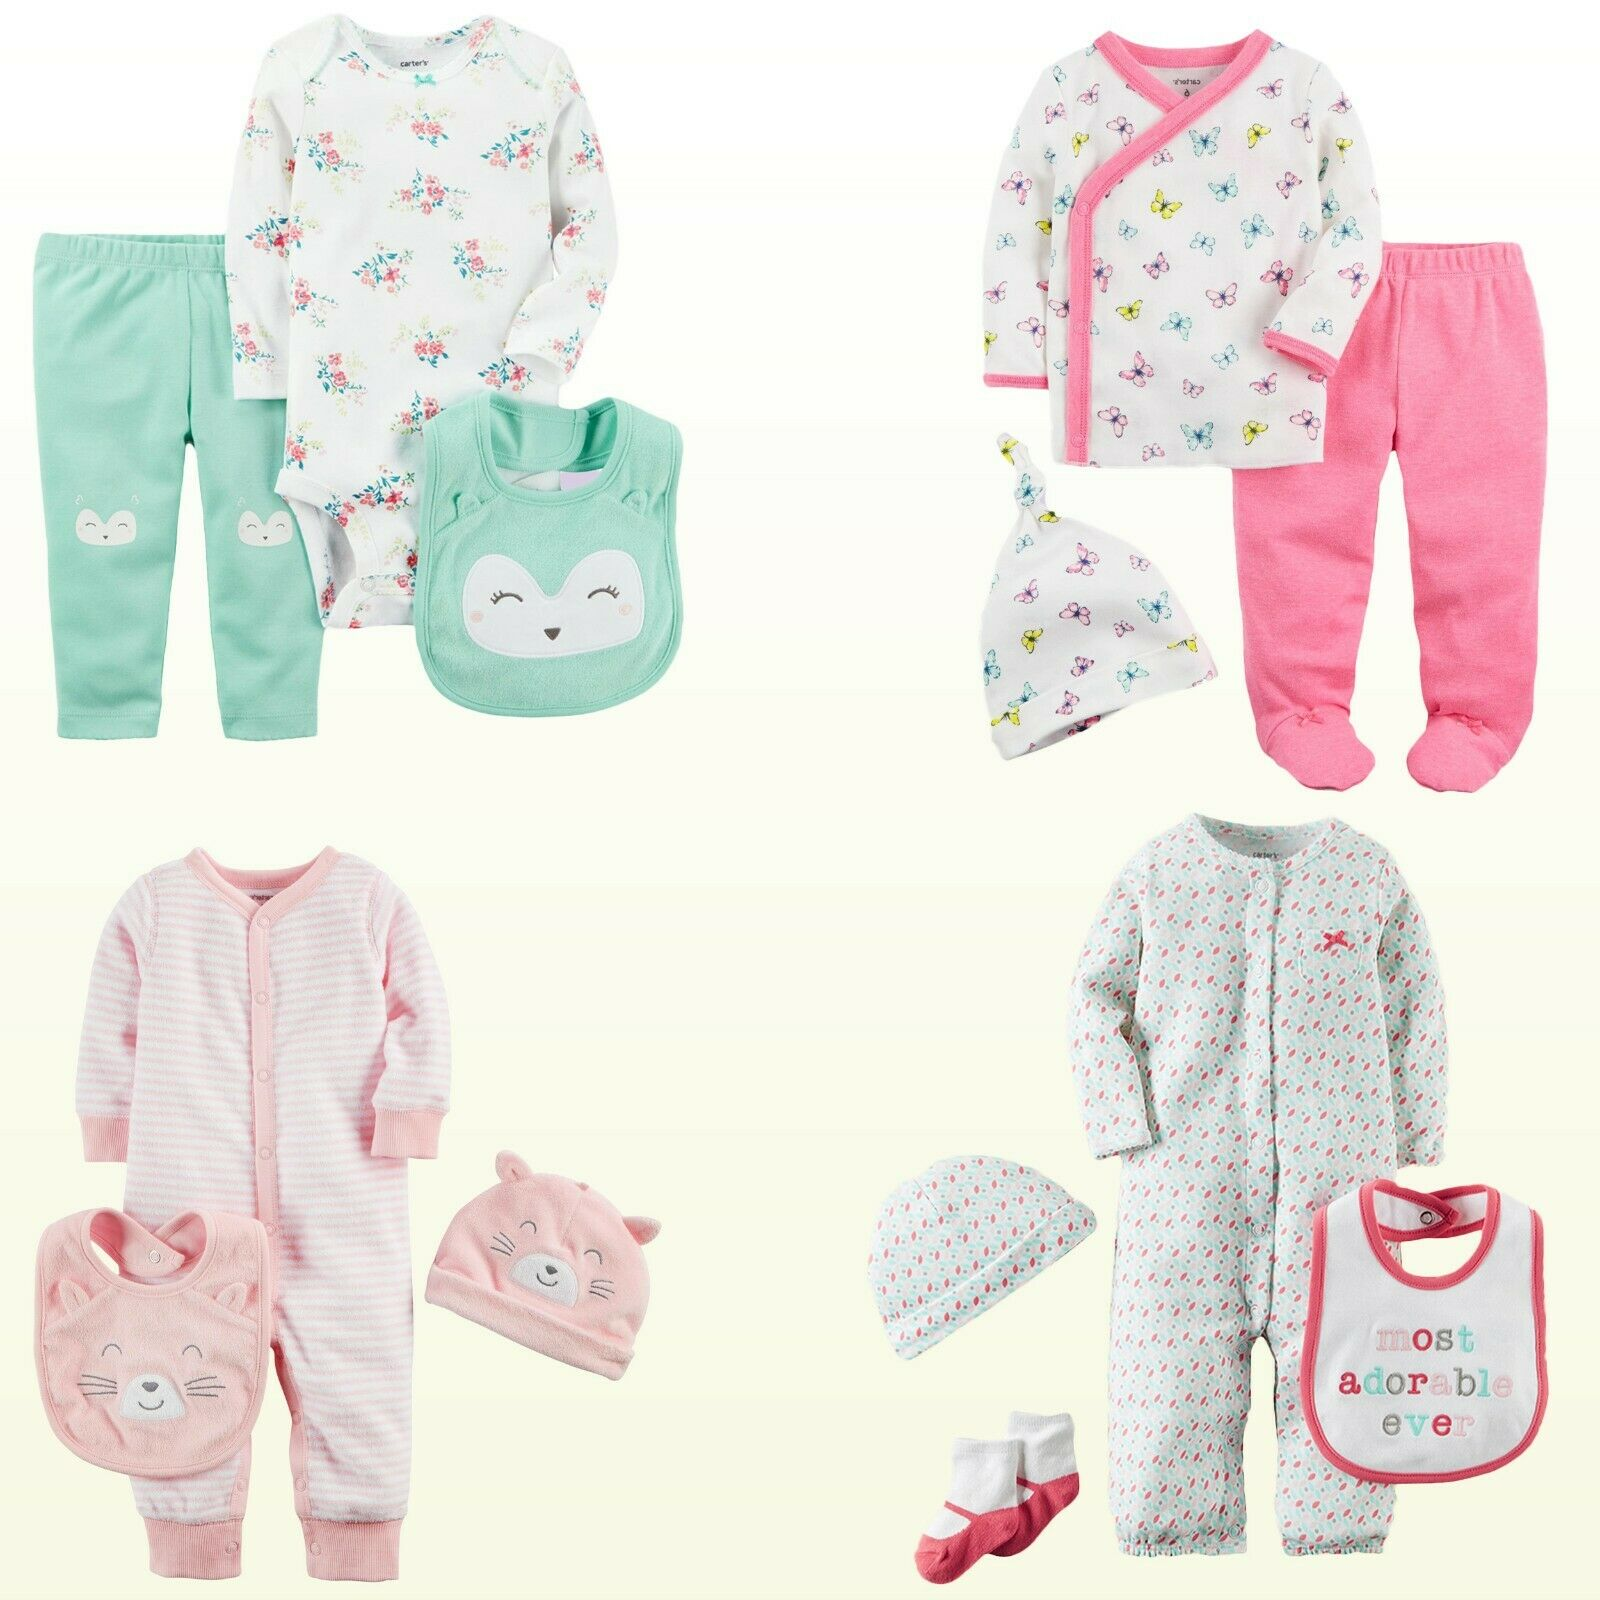 New Carter's Baby Girl 3 or 4 pc Layette Gift Set Geo / Flor